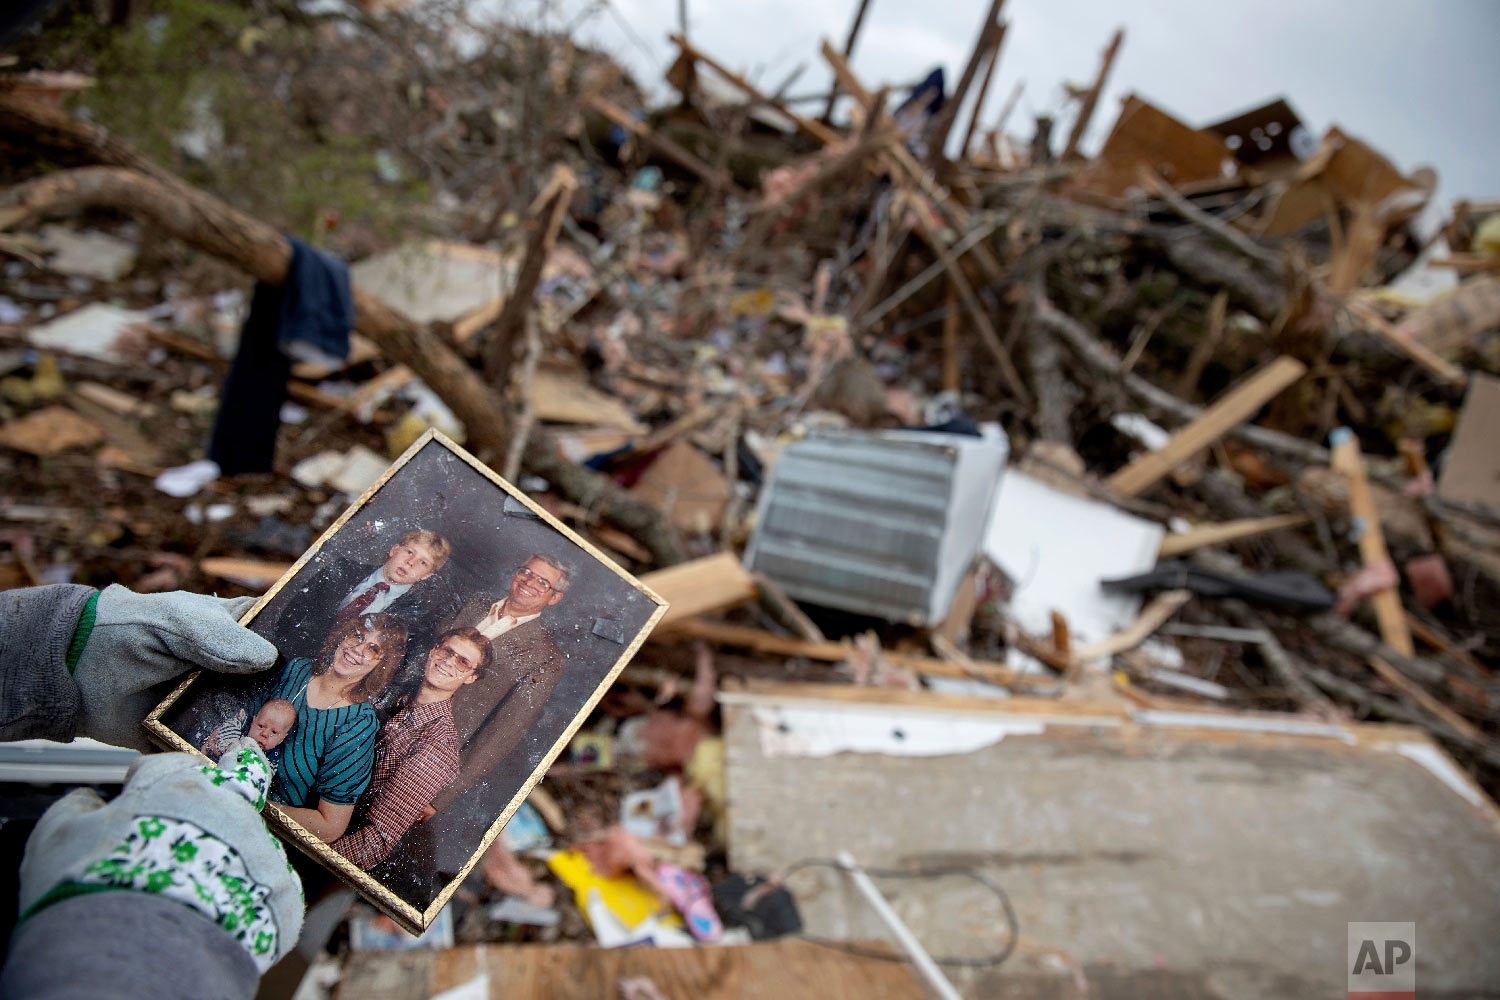 Danny Allen recovers a family photo while sifting through the debris of a friend's home destroyed in Beauregard, Ala., March 4, 2019. (AP Photo/David Goldman)